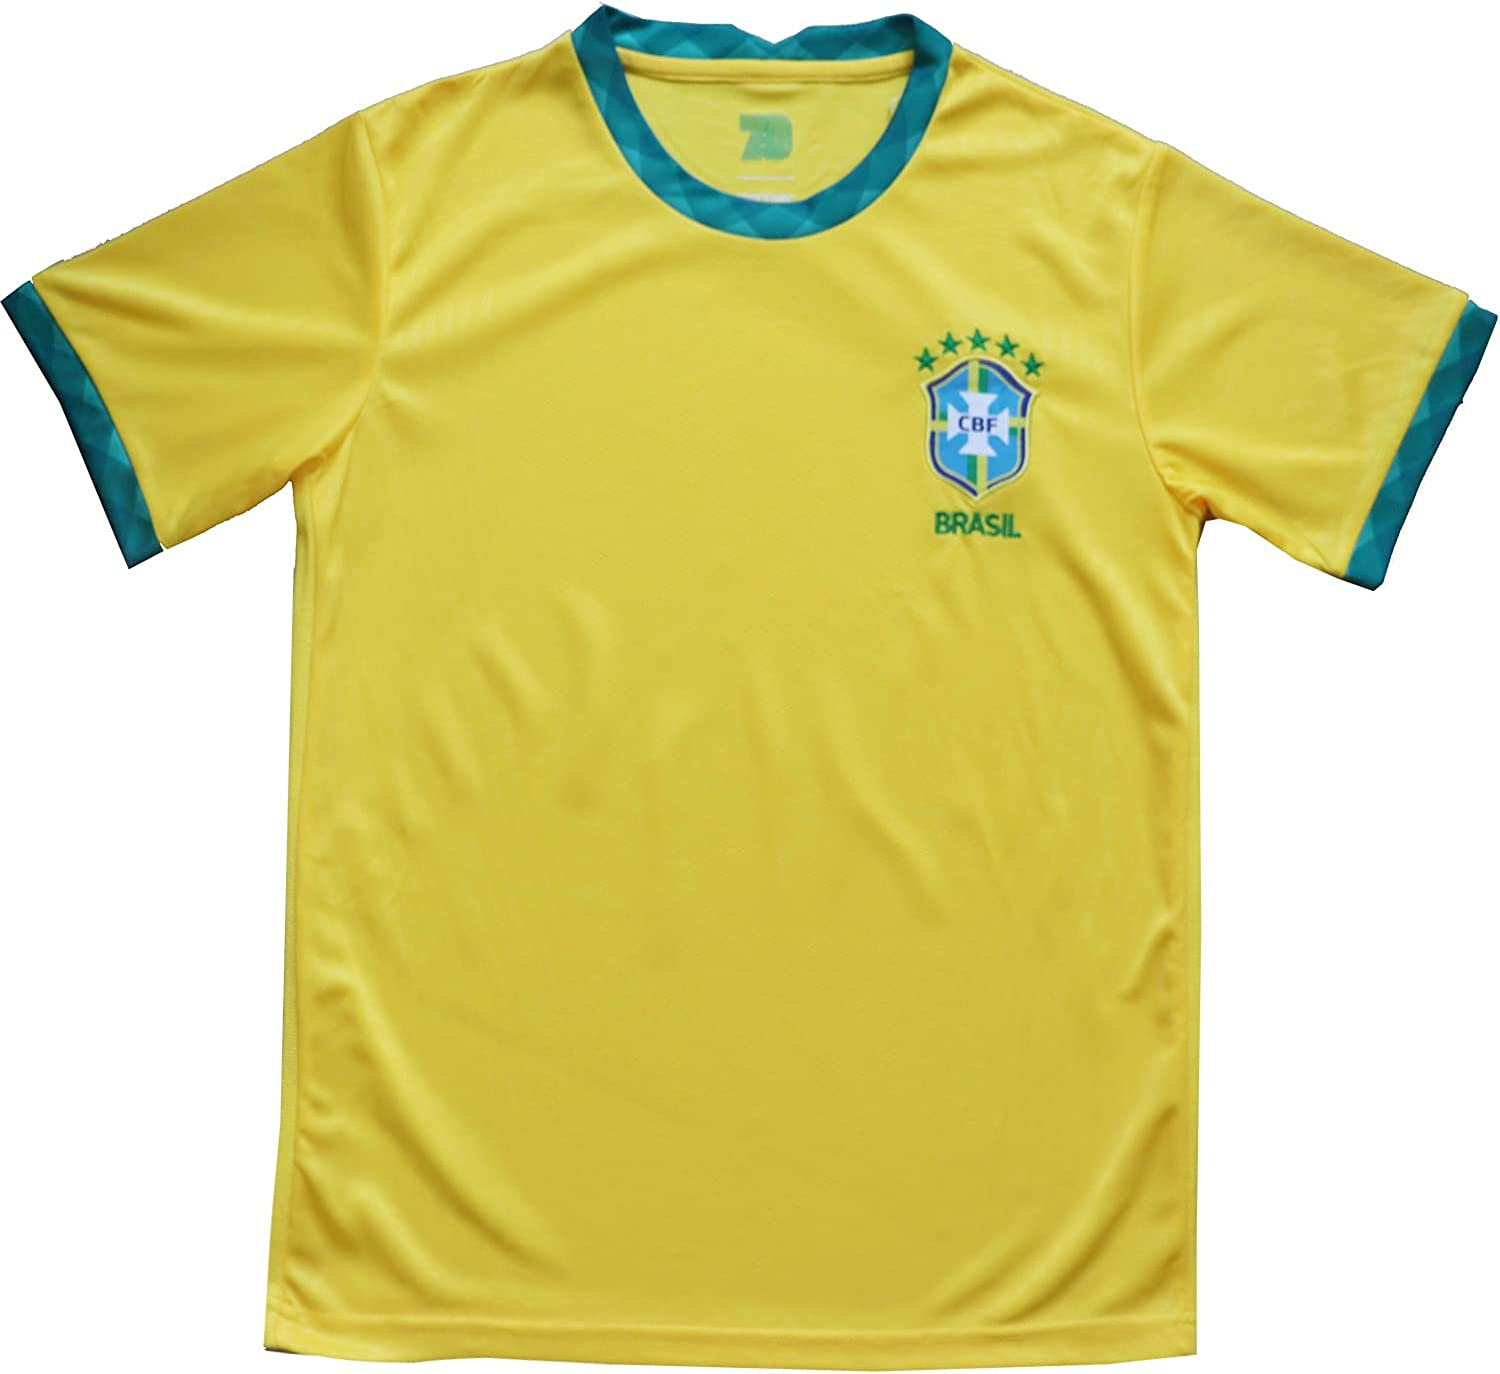 2021 South American National Soccer Teams Apparel Fan T-Shirt/Jersey/Shorts for Men Adult Sizes